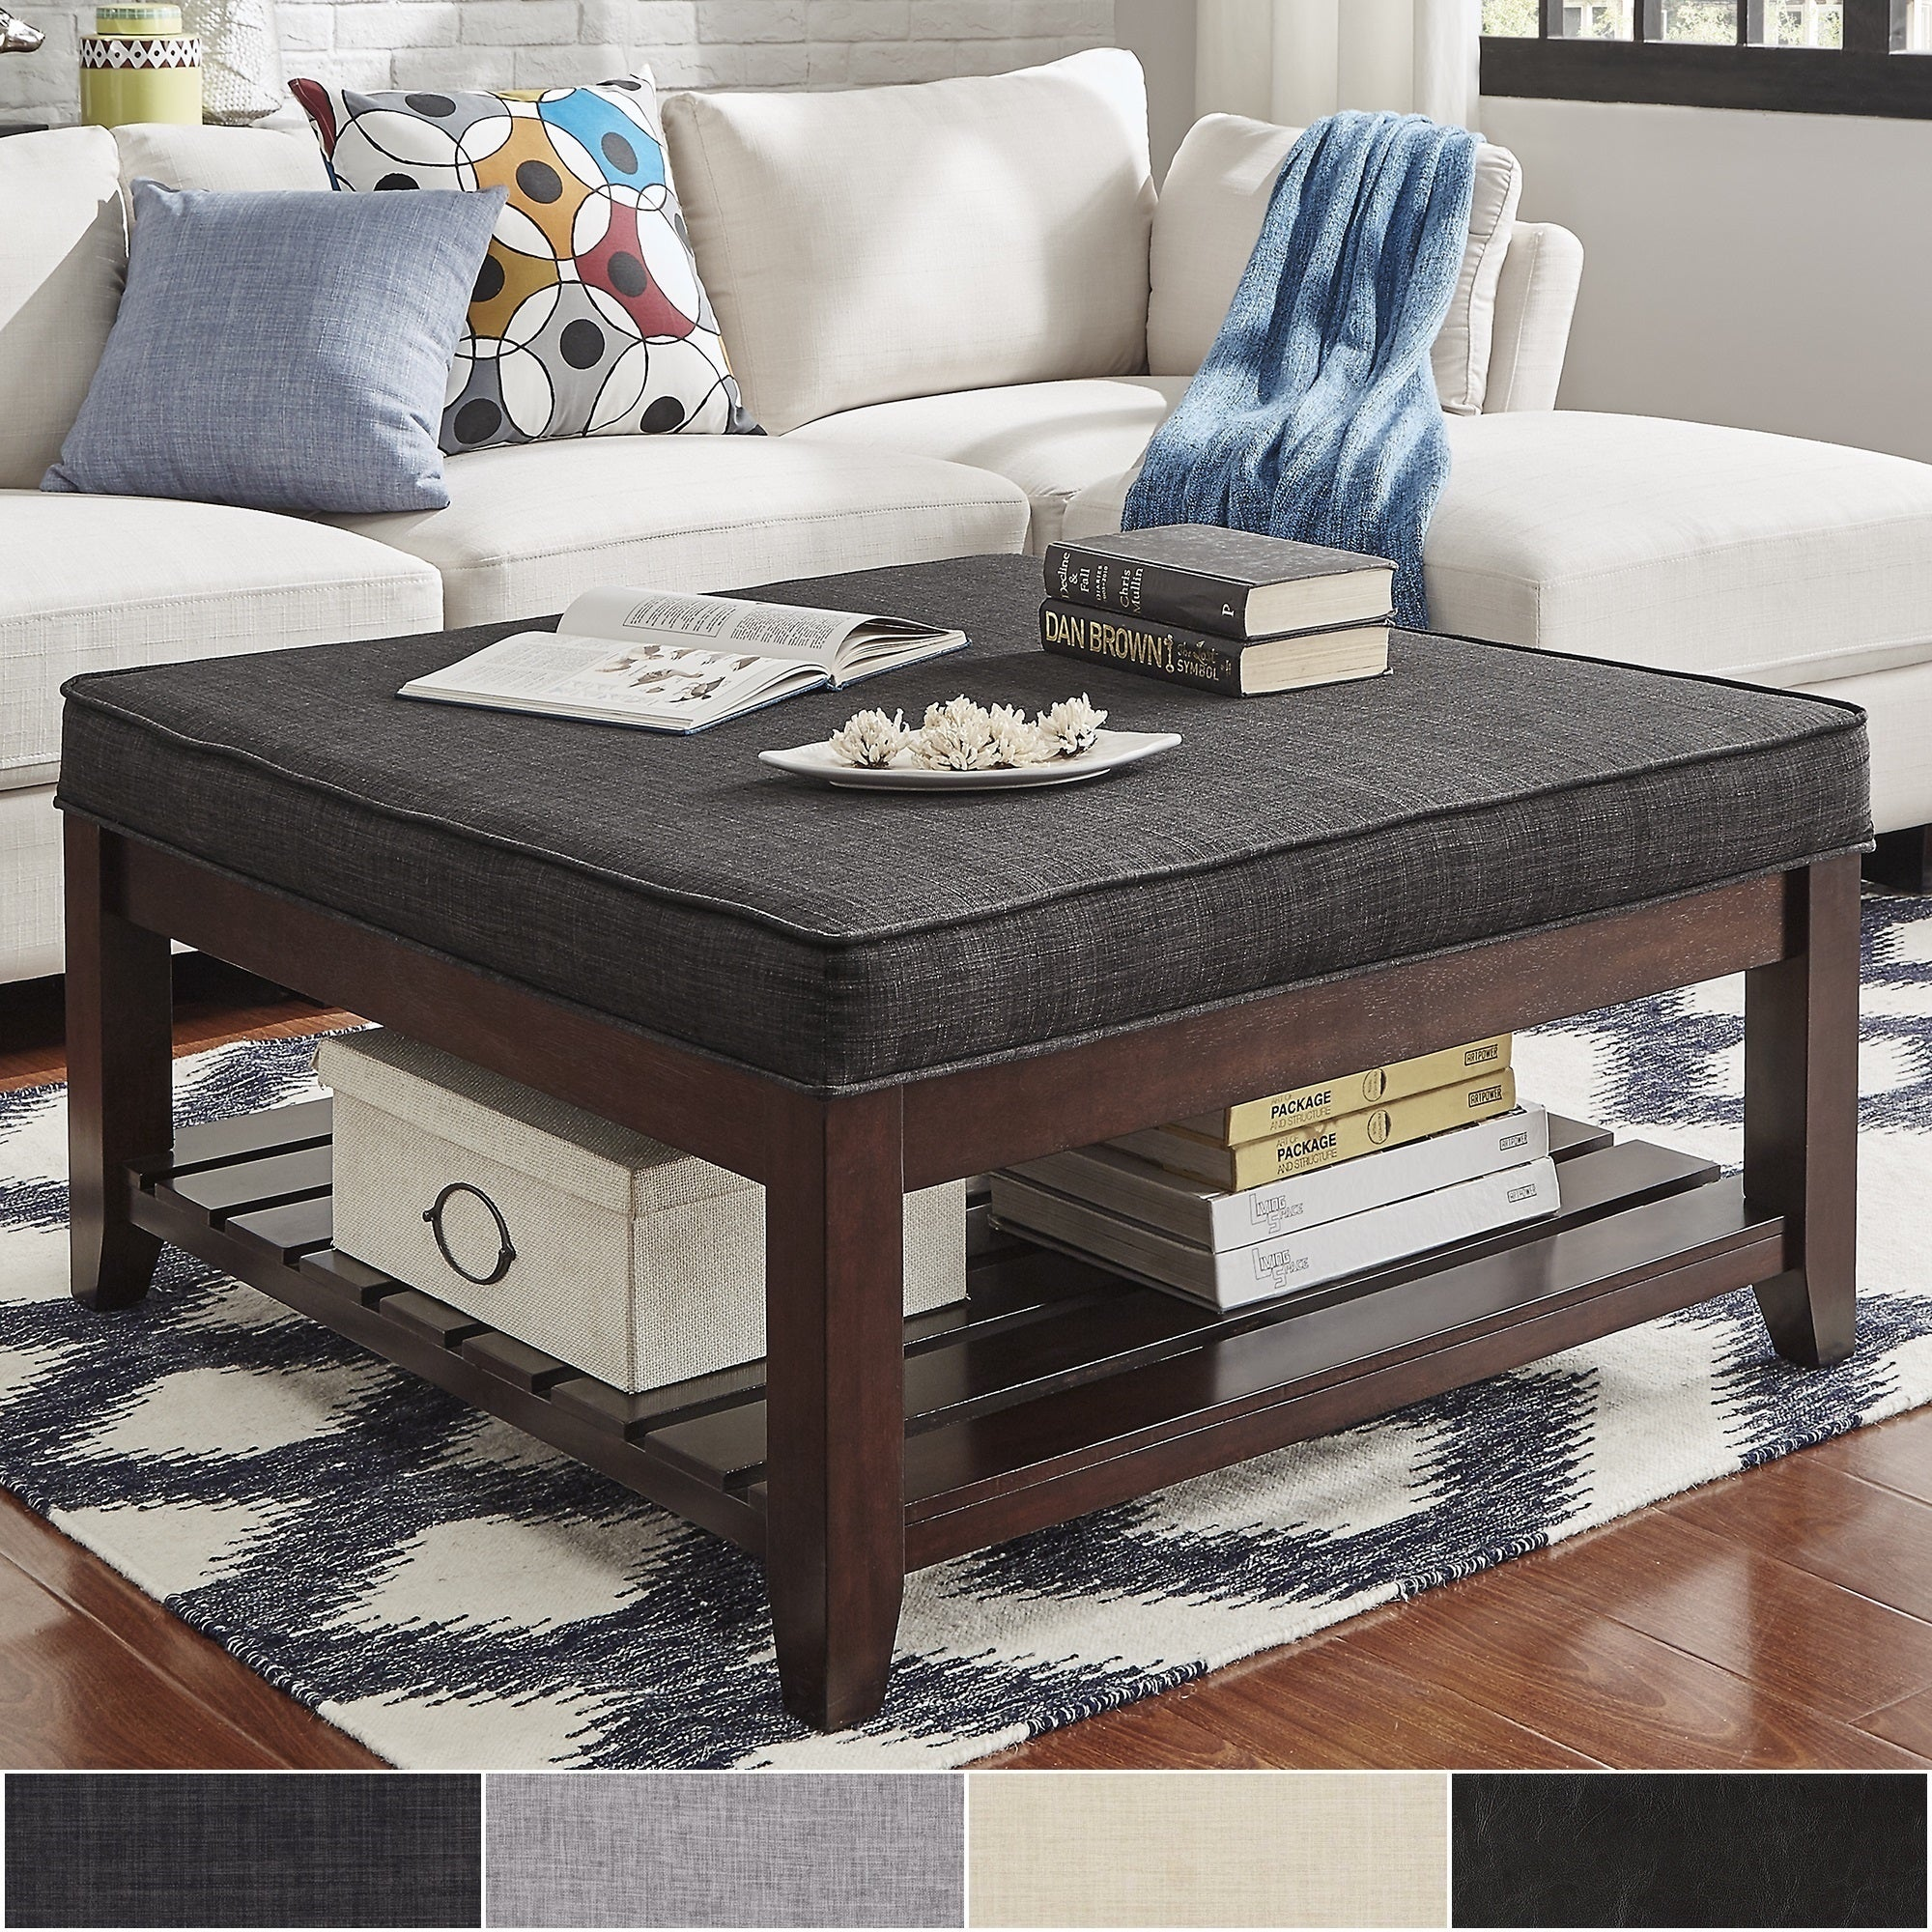 Lennon Espresso Planked Storage Ottoman Coffee Table by iNSPIRE Q Classic -  Free Shipping Today - Overstock.com - 20137484